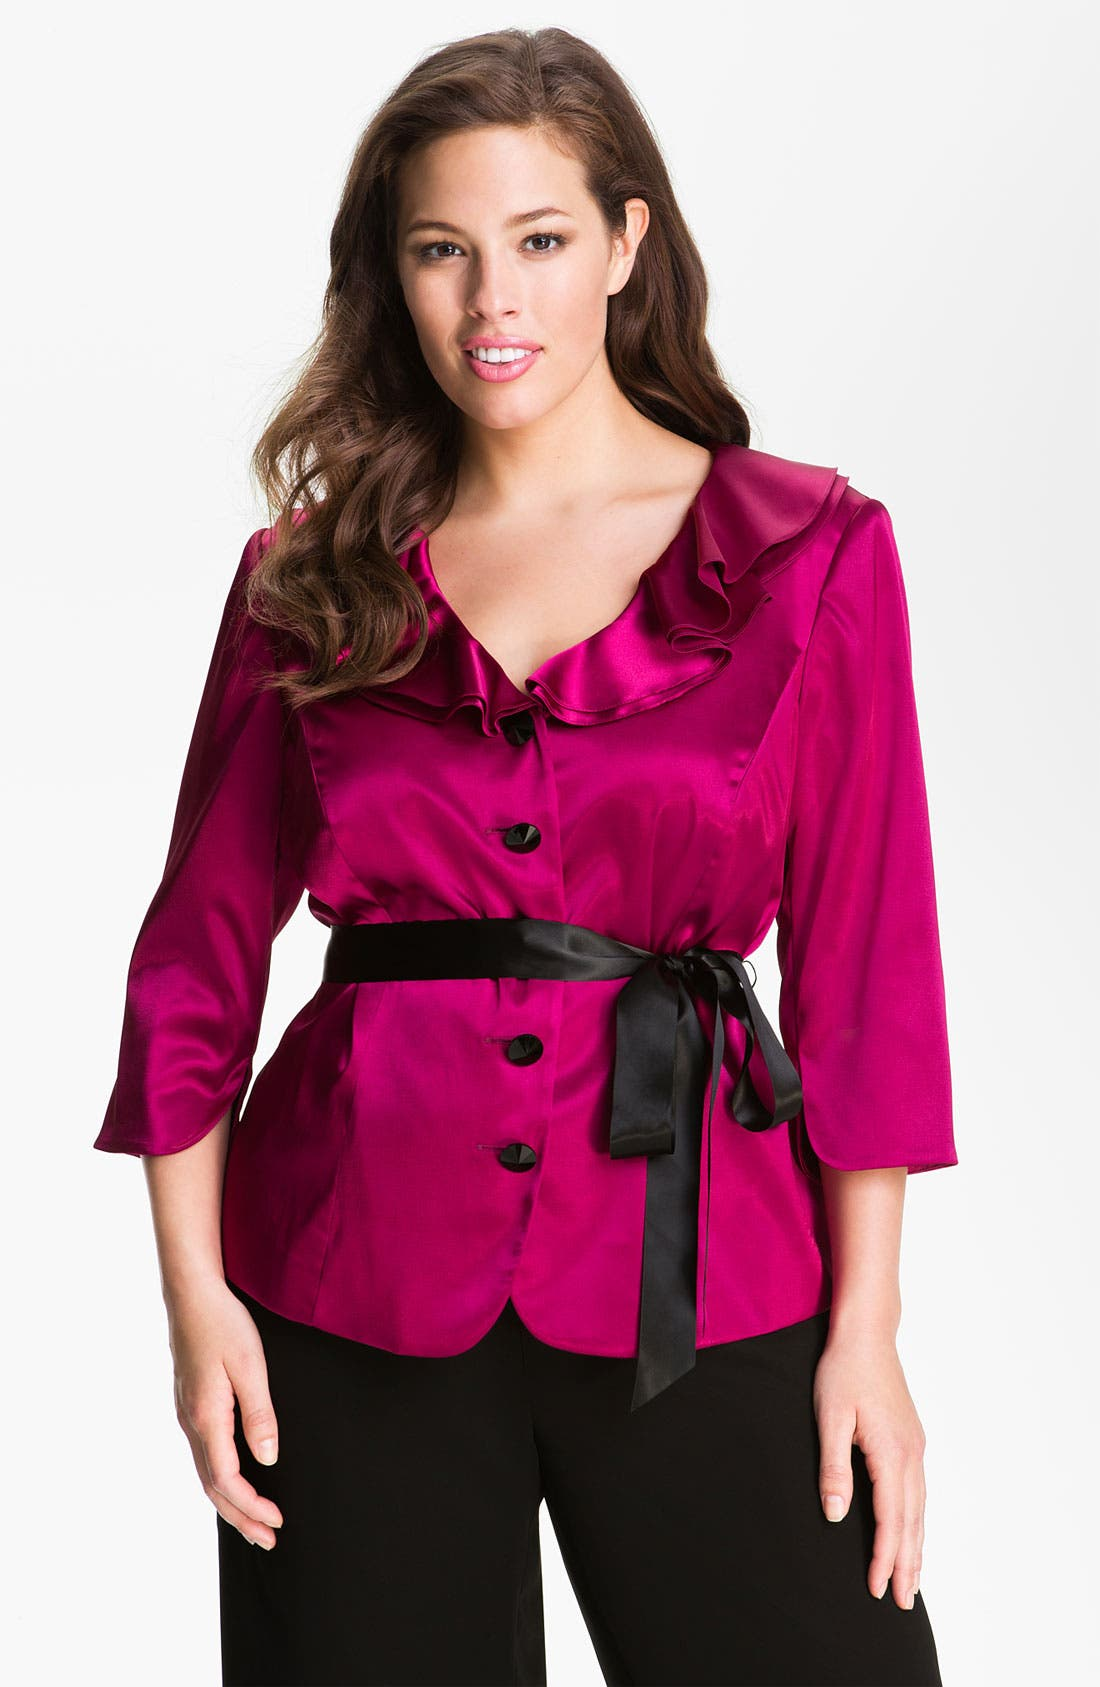 Alternate Image 1 Selected - Adrianna Papell Ruffle Charmeuse Jacket (Plus)